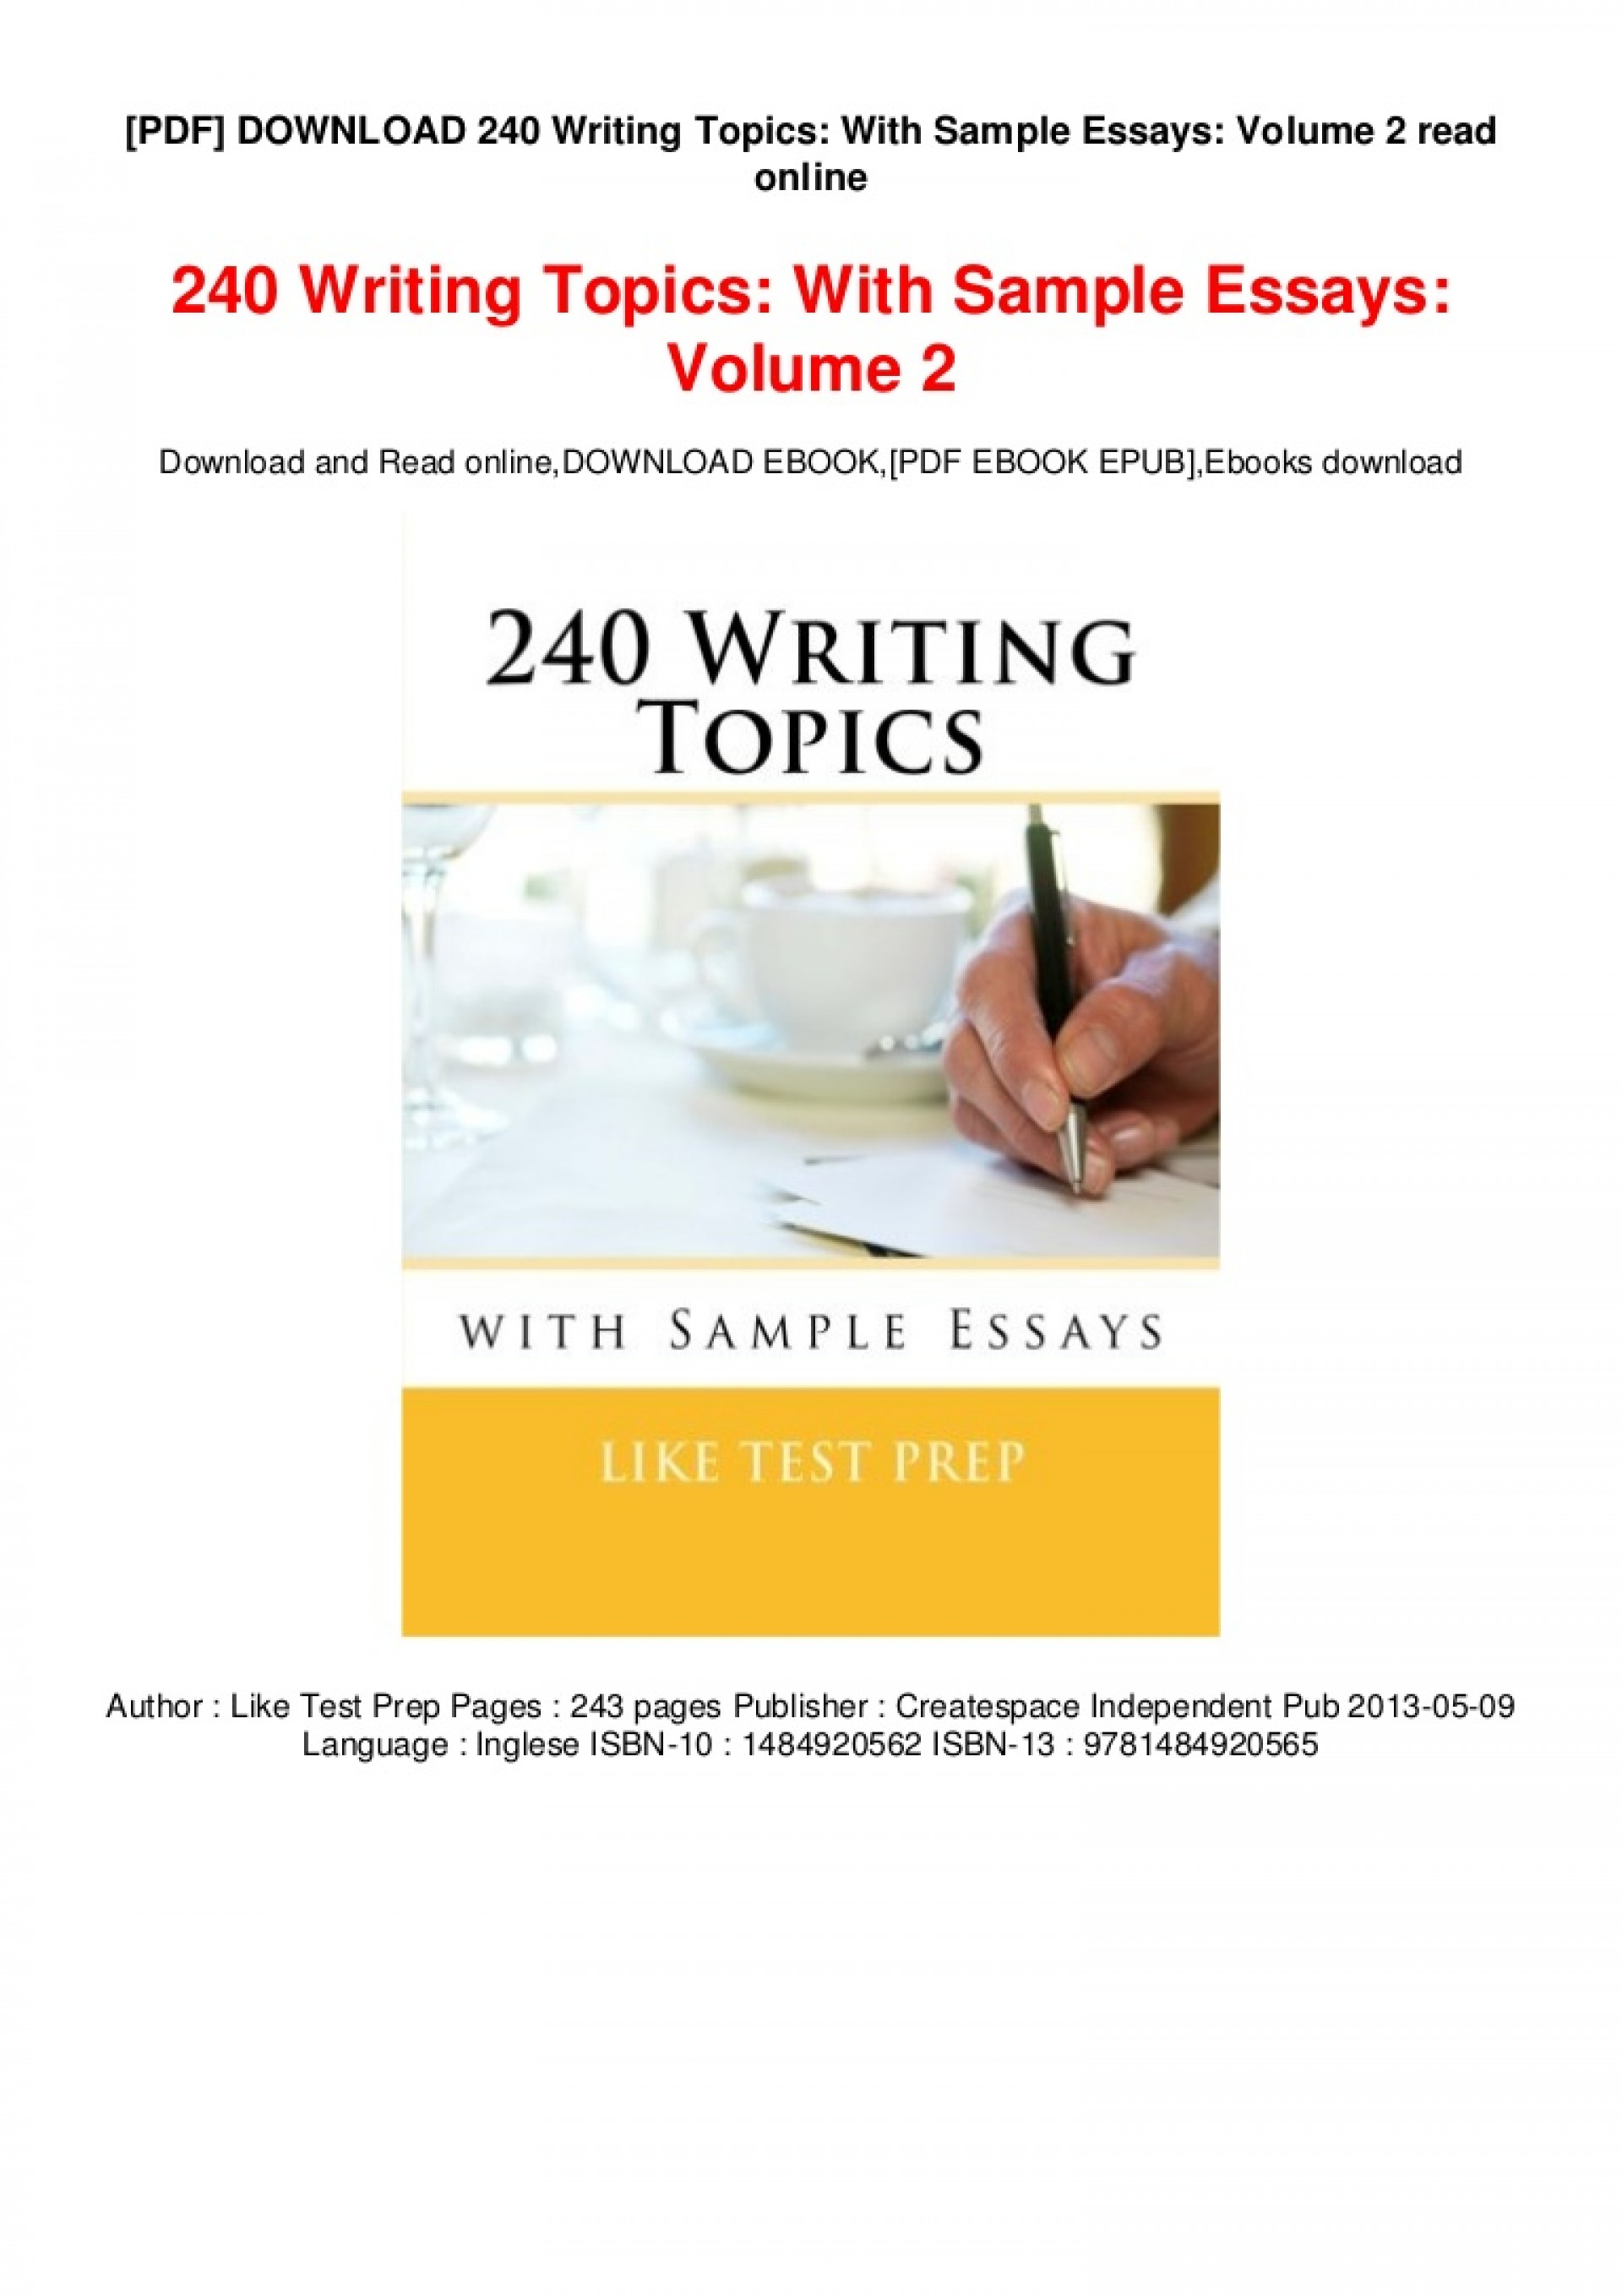 024 Essays Online To Read Pdf Download Writing Topics With Sample Volume Thumbnail Essay Remarkable Free Best 1920